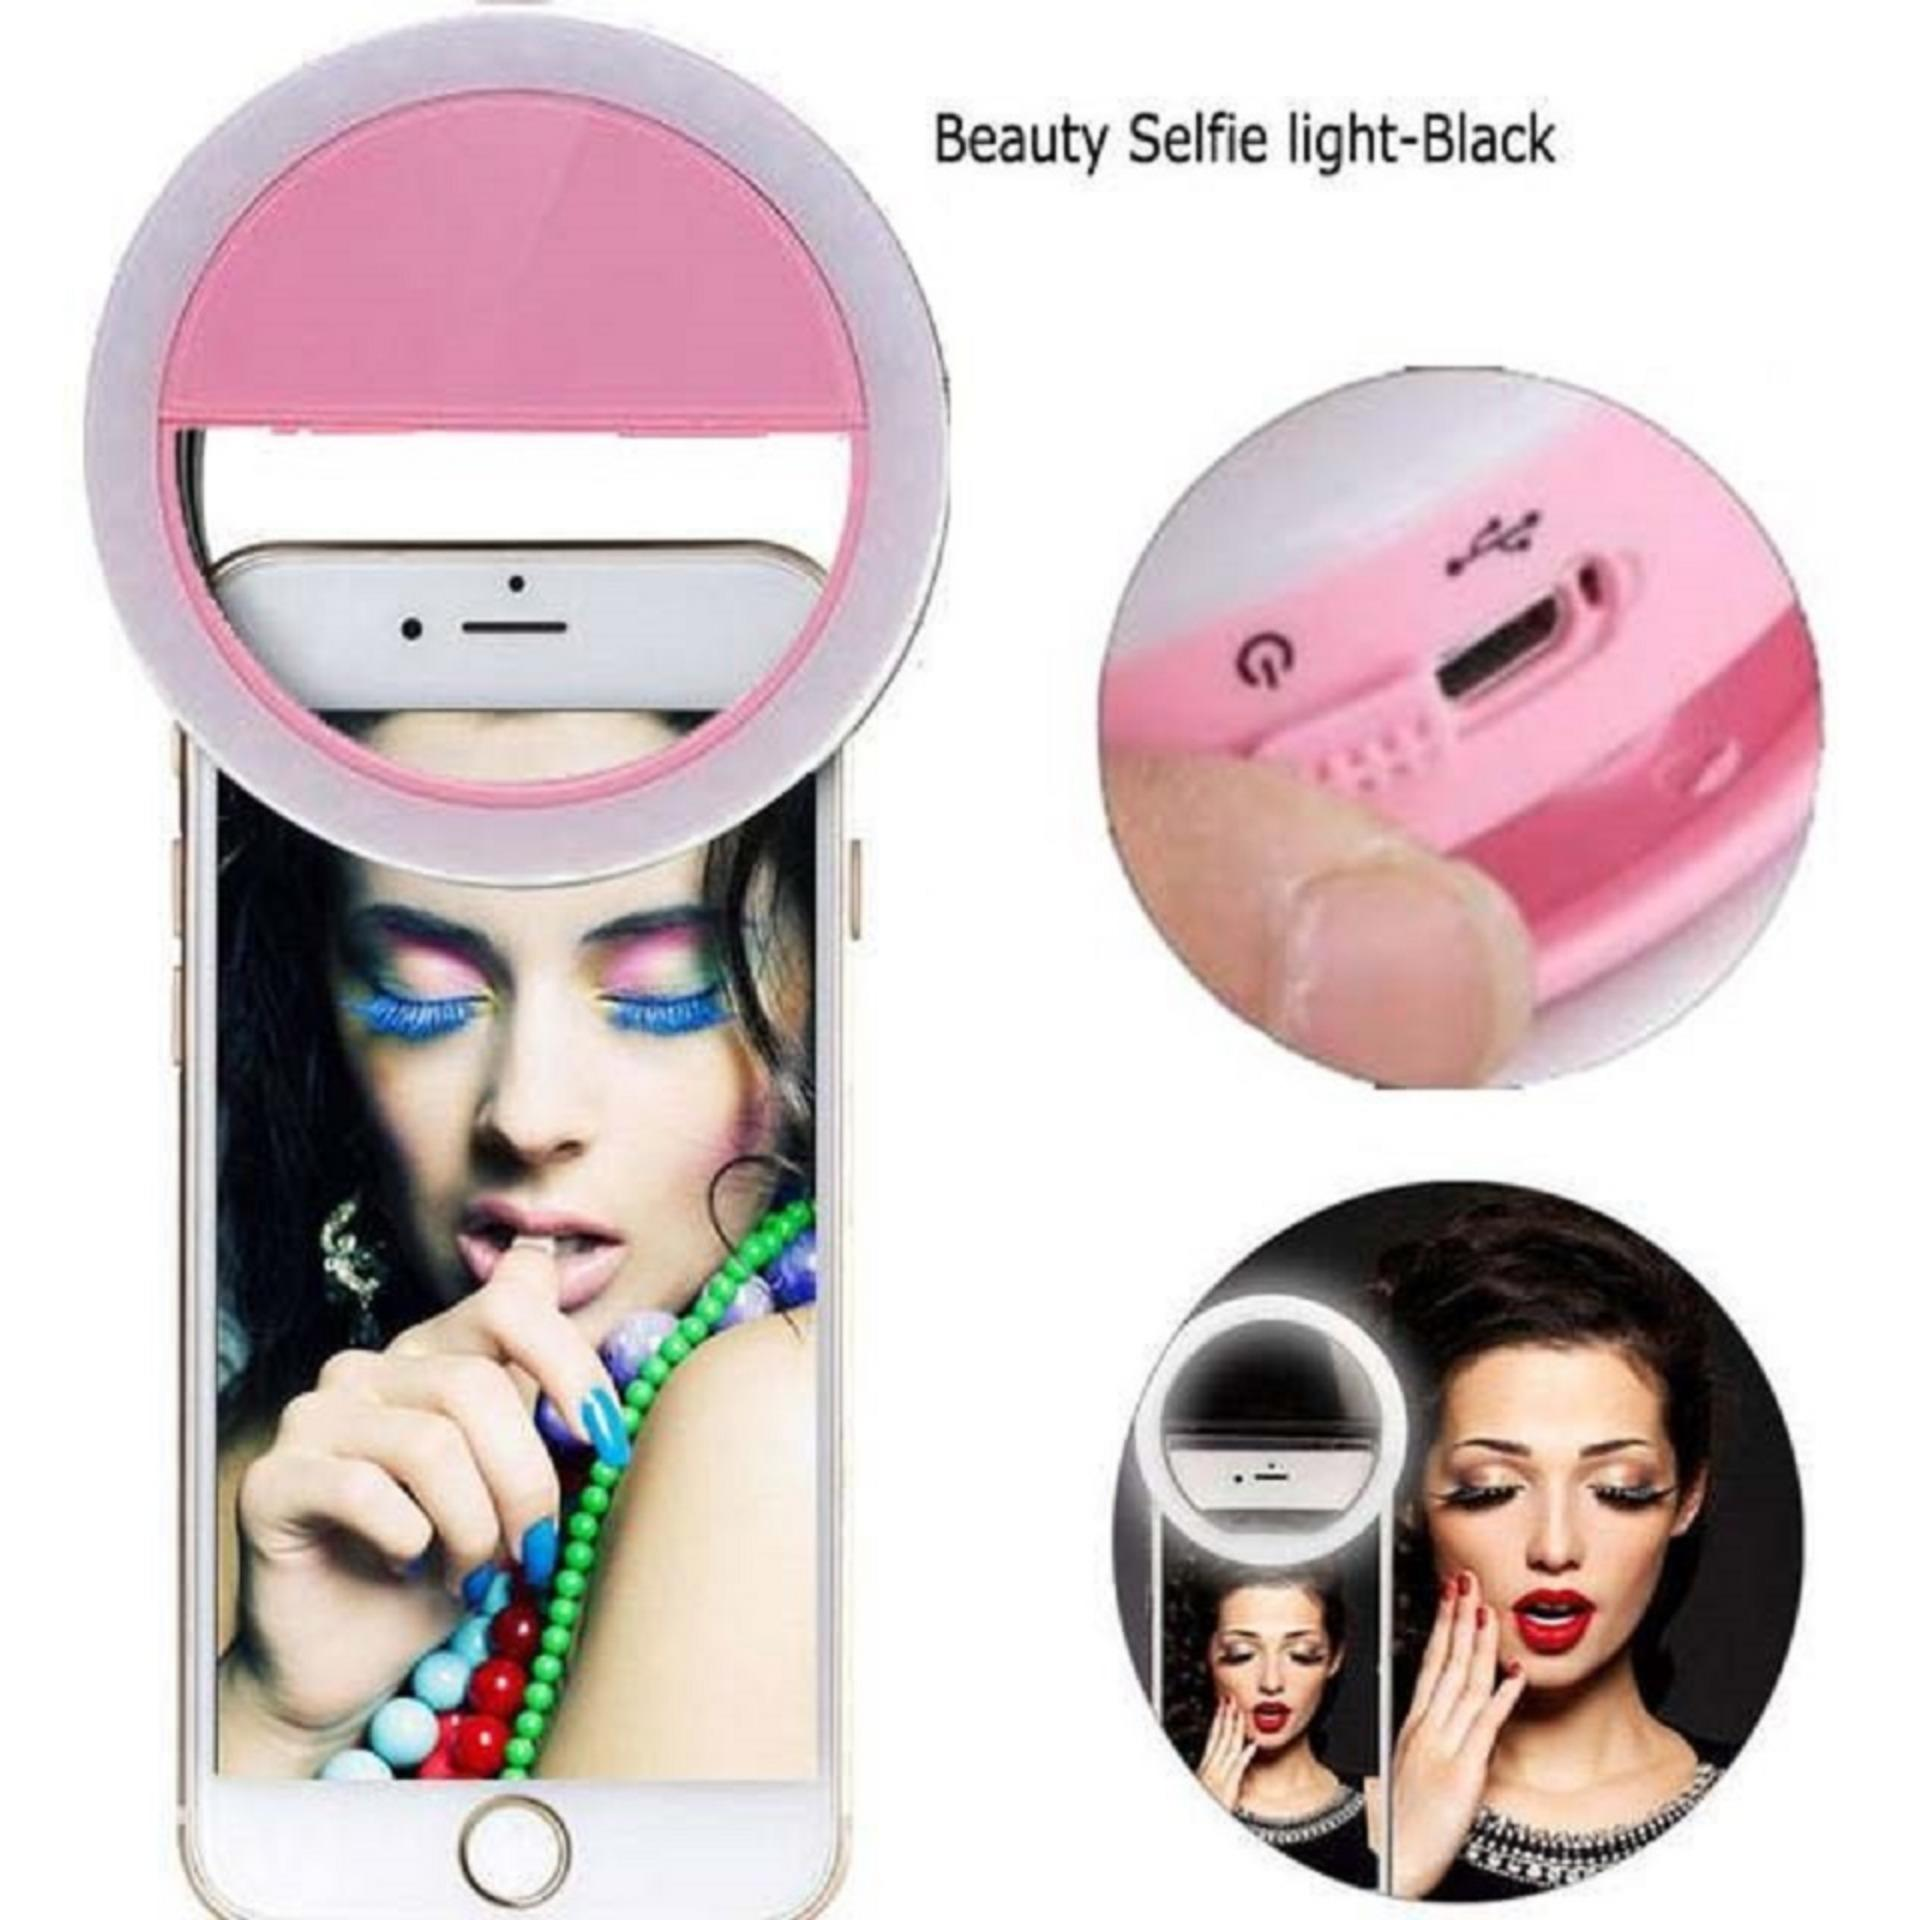 Bendoel 36 LED Selfie Ring Lampu Flash Light Smartphone Universal Portable For Fotografi / Webcam / MakeUp / Laptop / Android / Emergency / Windows / iOS / Tablet With USB Charger - Pink